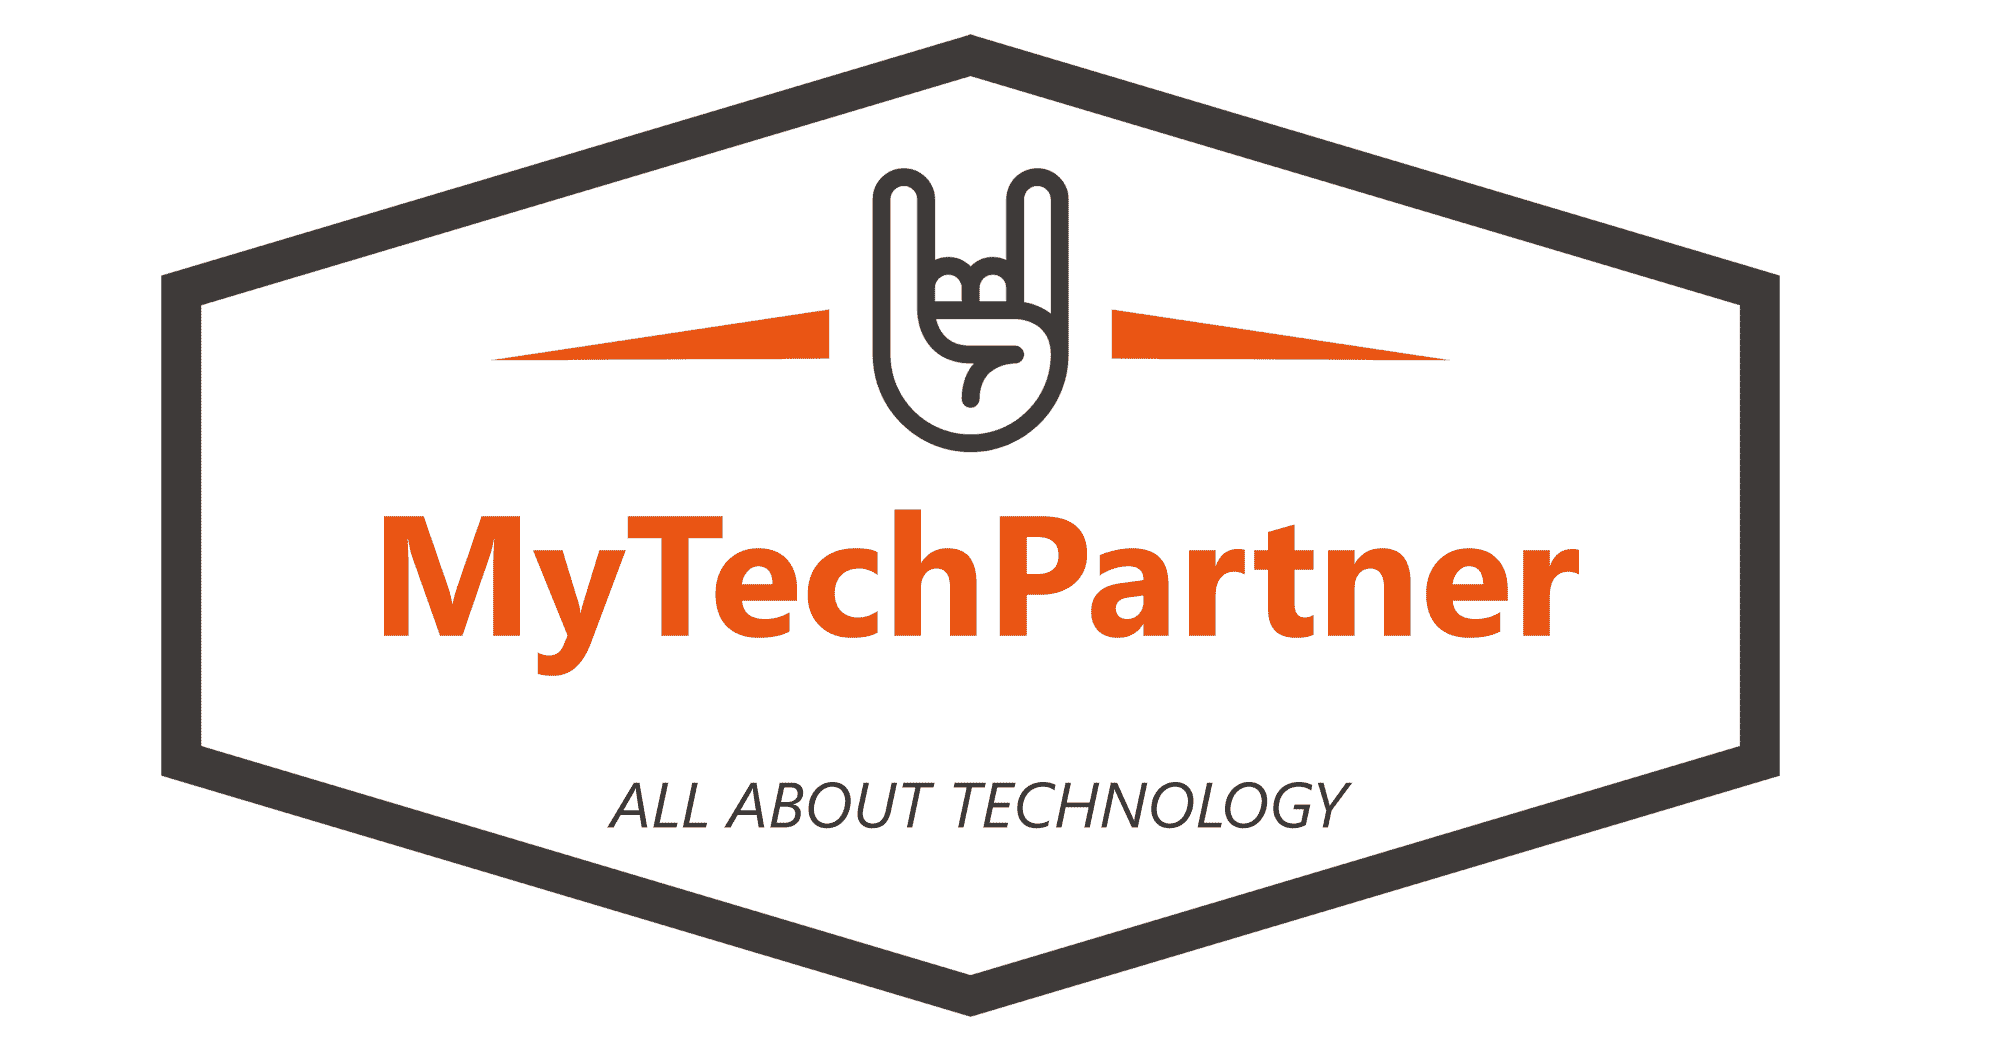 Mytechpartner.com